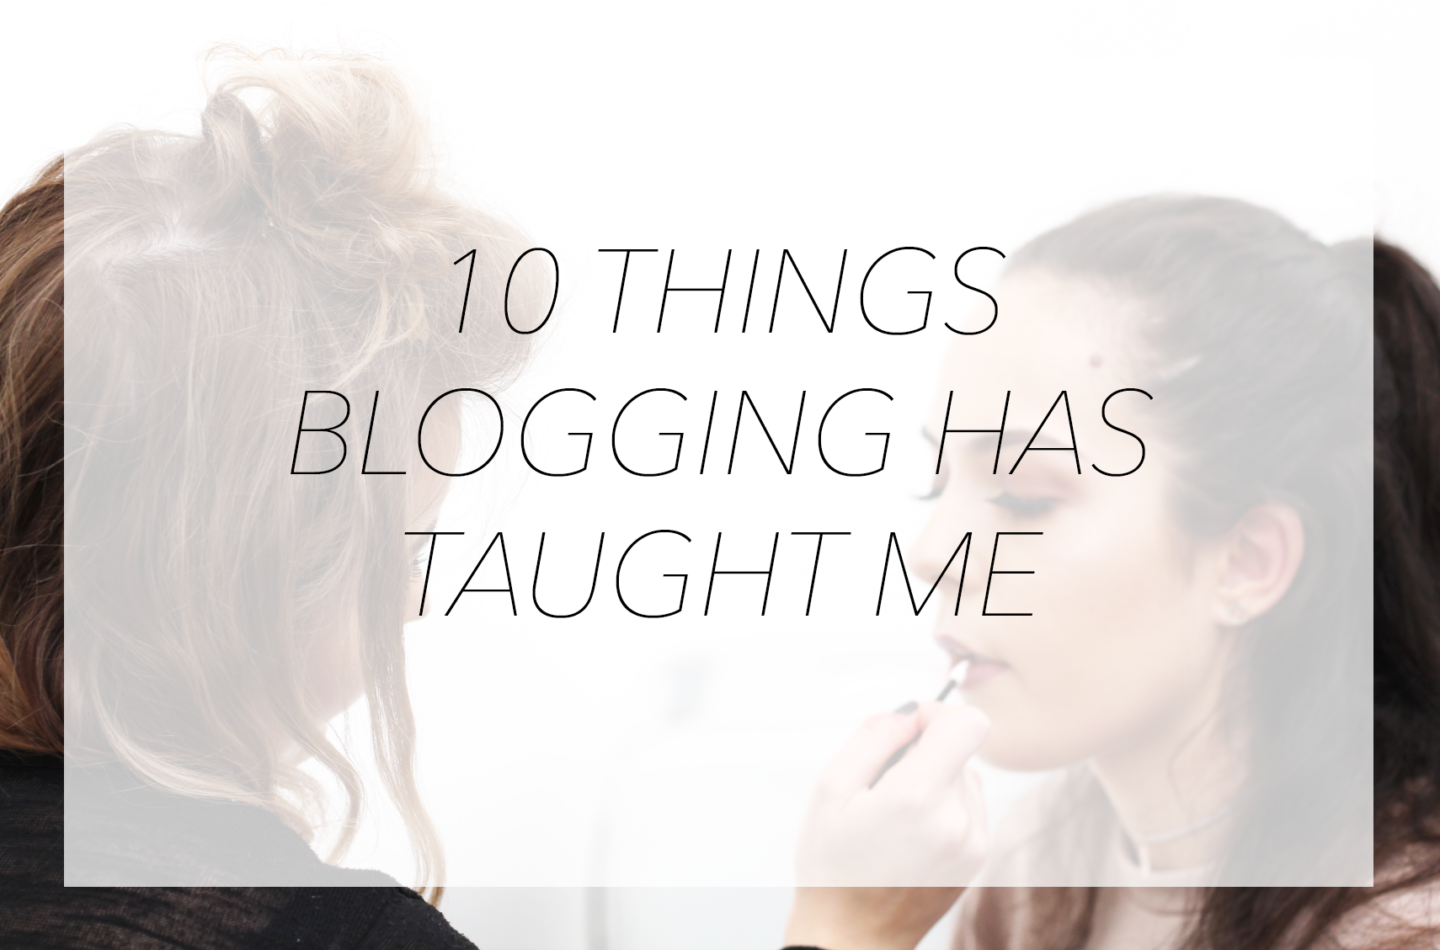 10 THINGS BLOGGING HAS TAUGHT ME